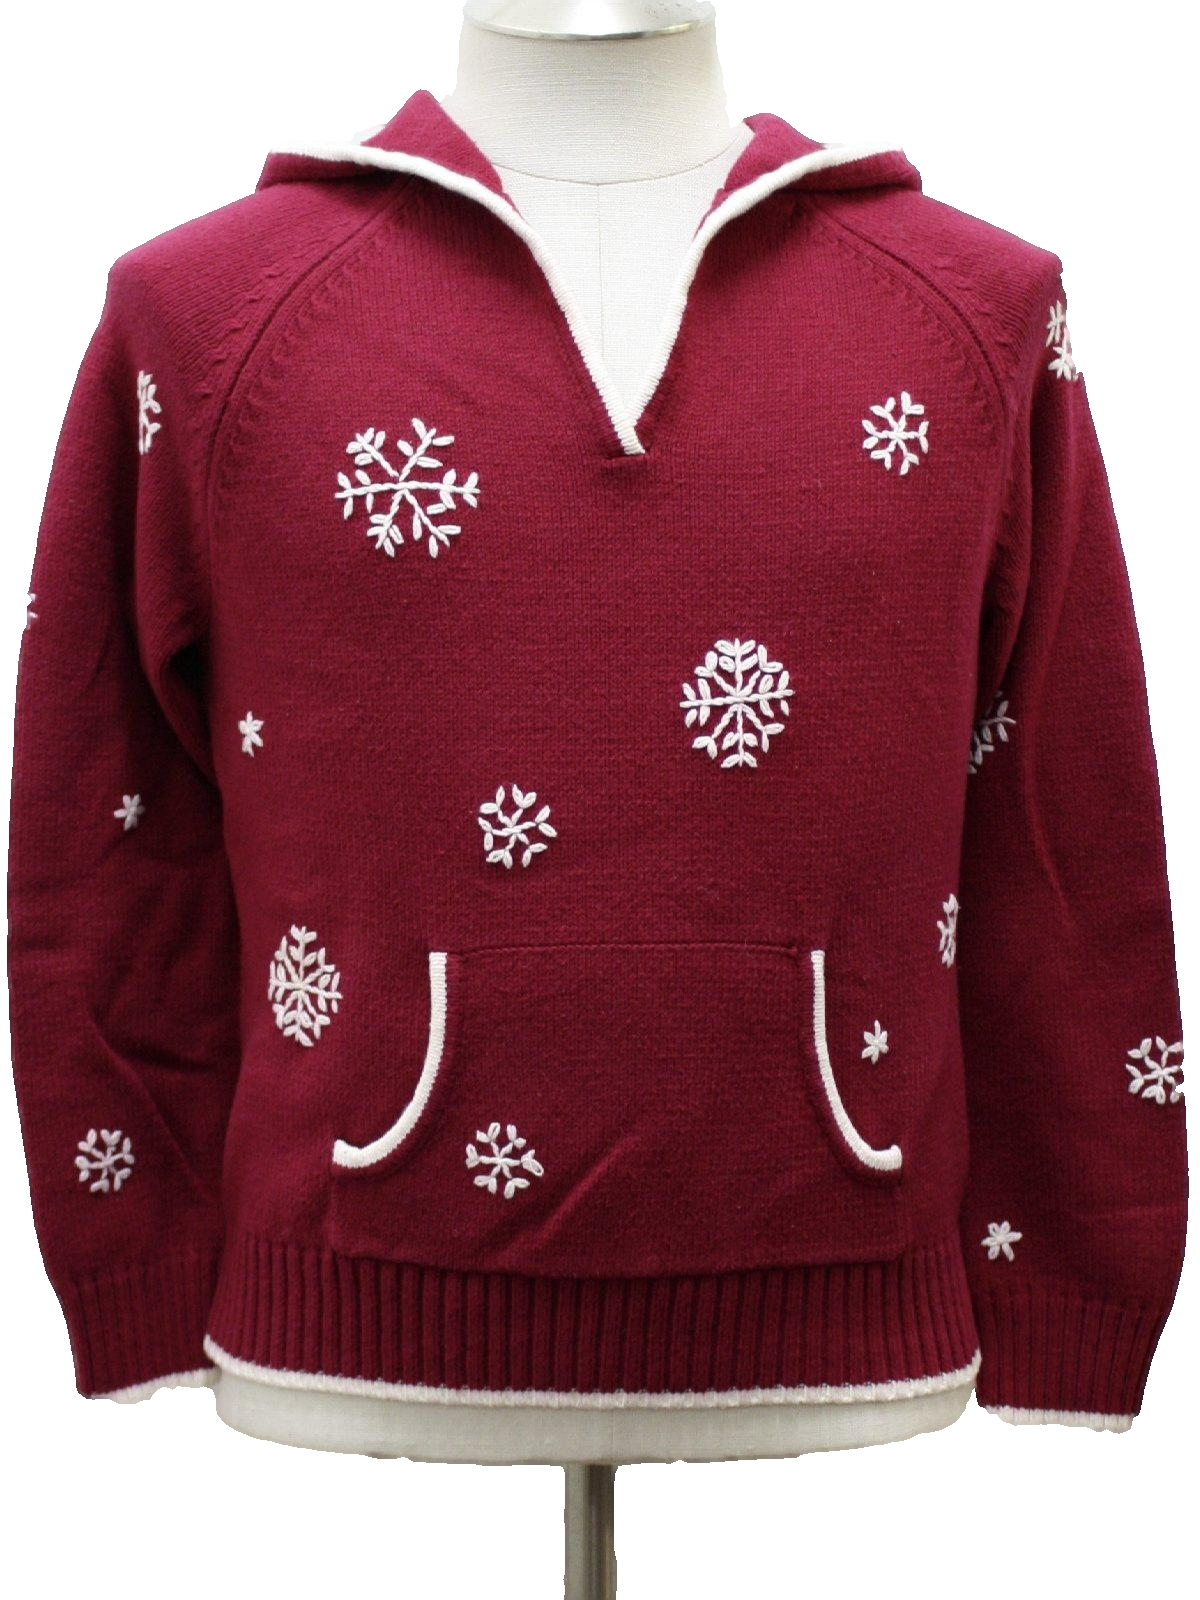 989d5c09 Sonoma Womens Ugly Christmas Hoodie Sweater 31.00 SALE $12.00 In stock.  Item No. 182680